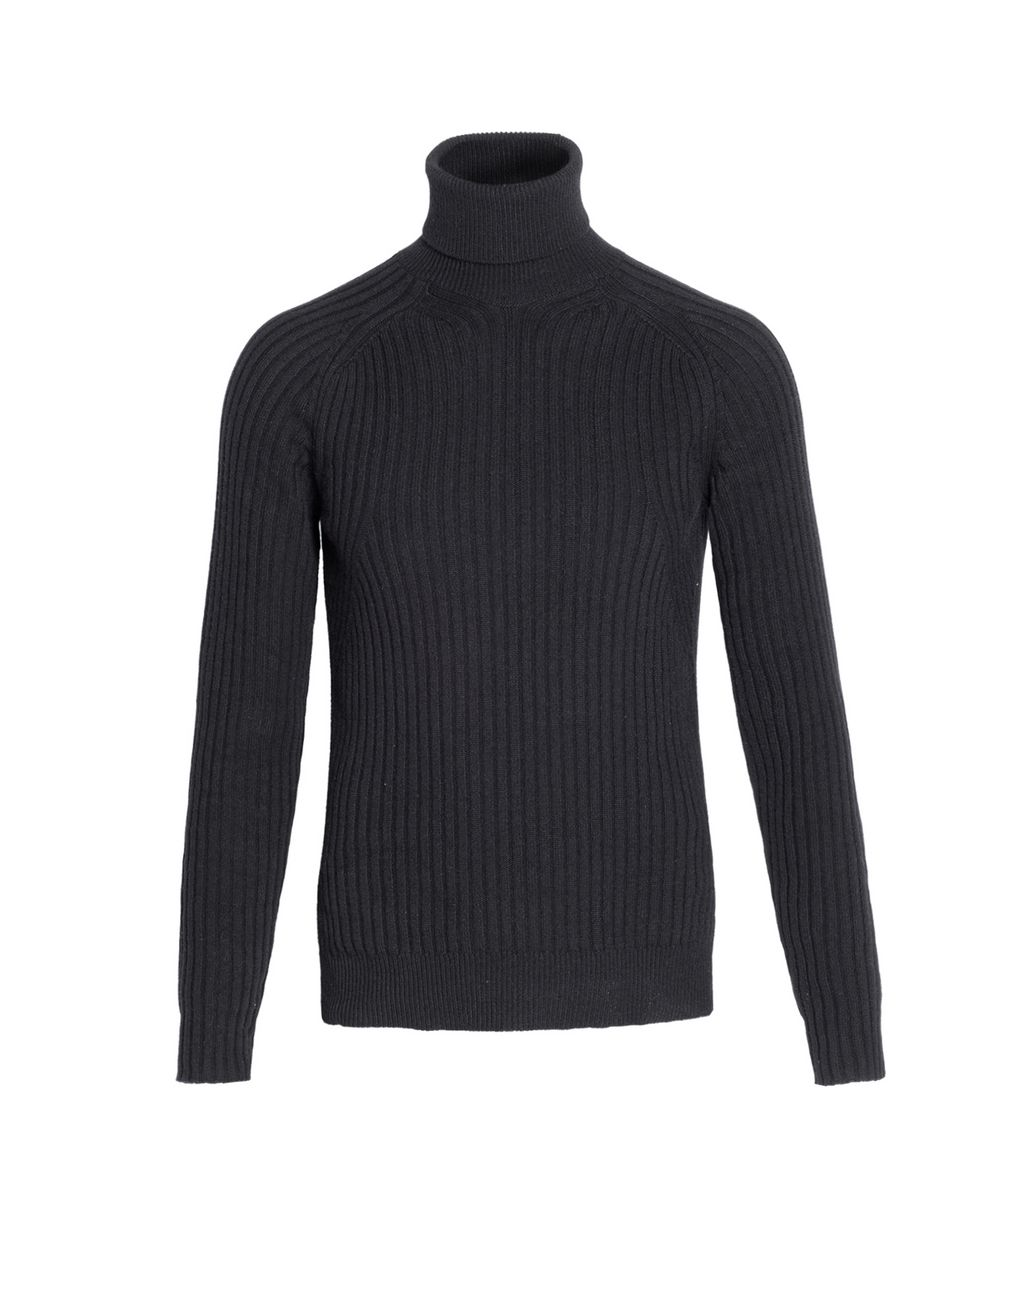 BRIONI Black Cashmere Ribbed Turtleneck Sweater Knitwear [*** pickupInStoreShippingNotGuaranteed_info ***] f